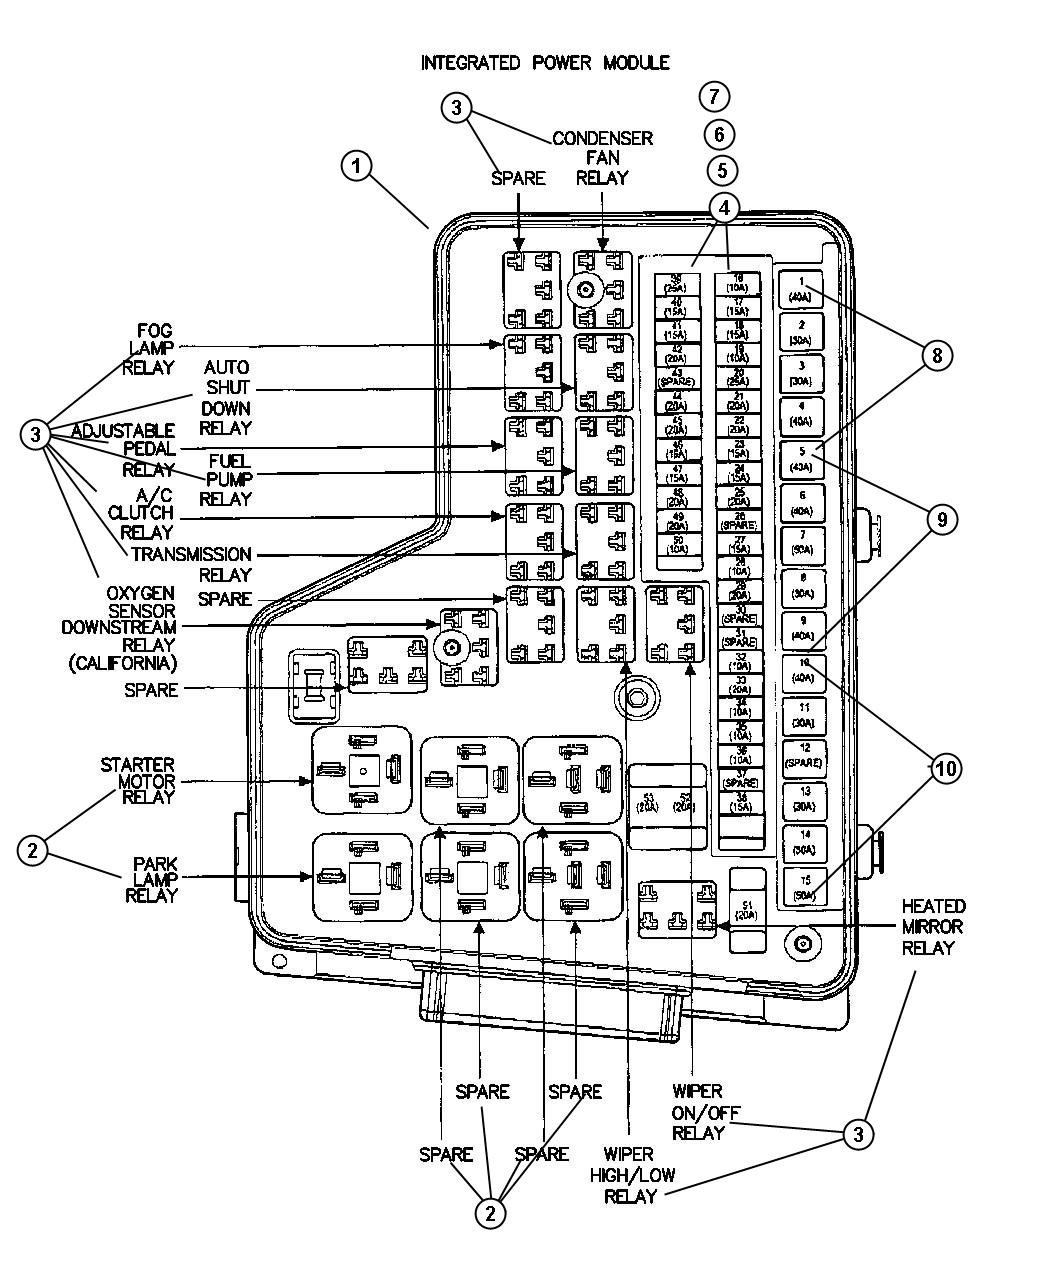 1990 4runner Starter Solenoid Wiring Diagram Auto Electrical 1992 Chrysler New Yorker Relay Location Free Engine